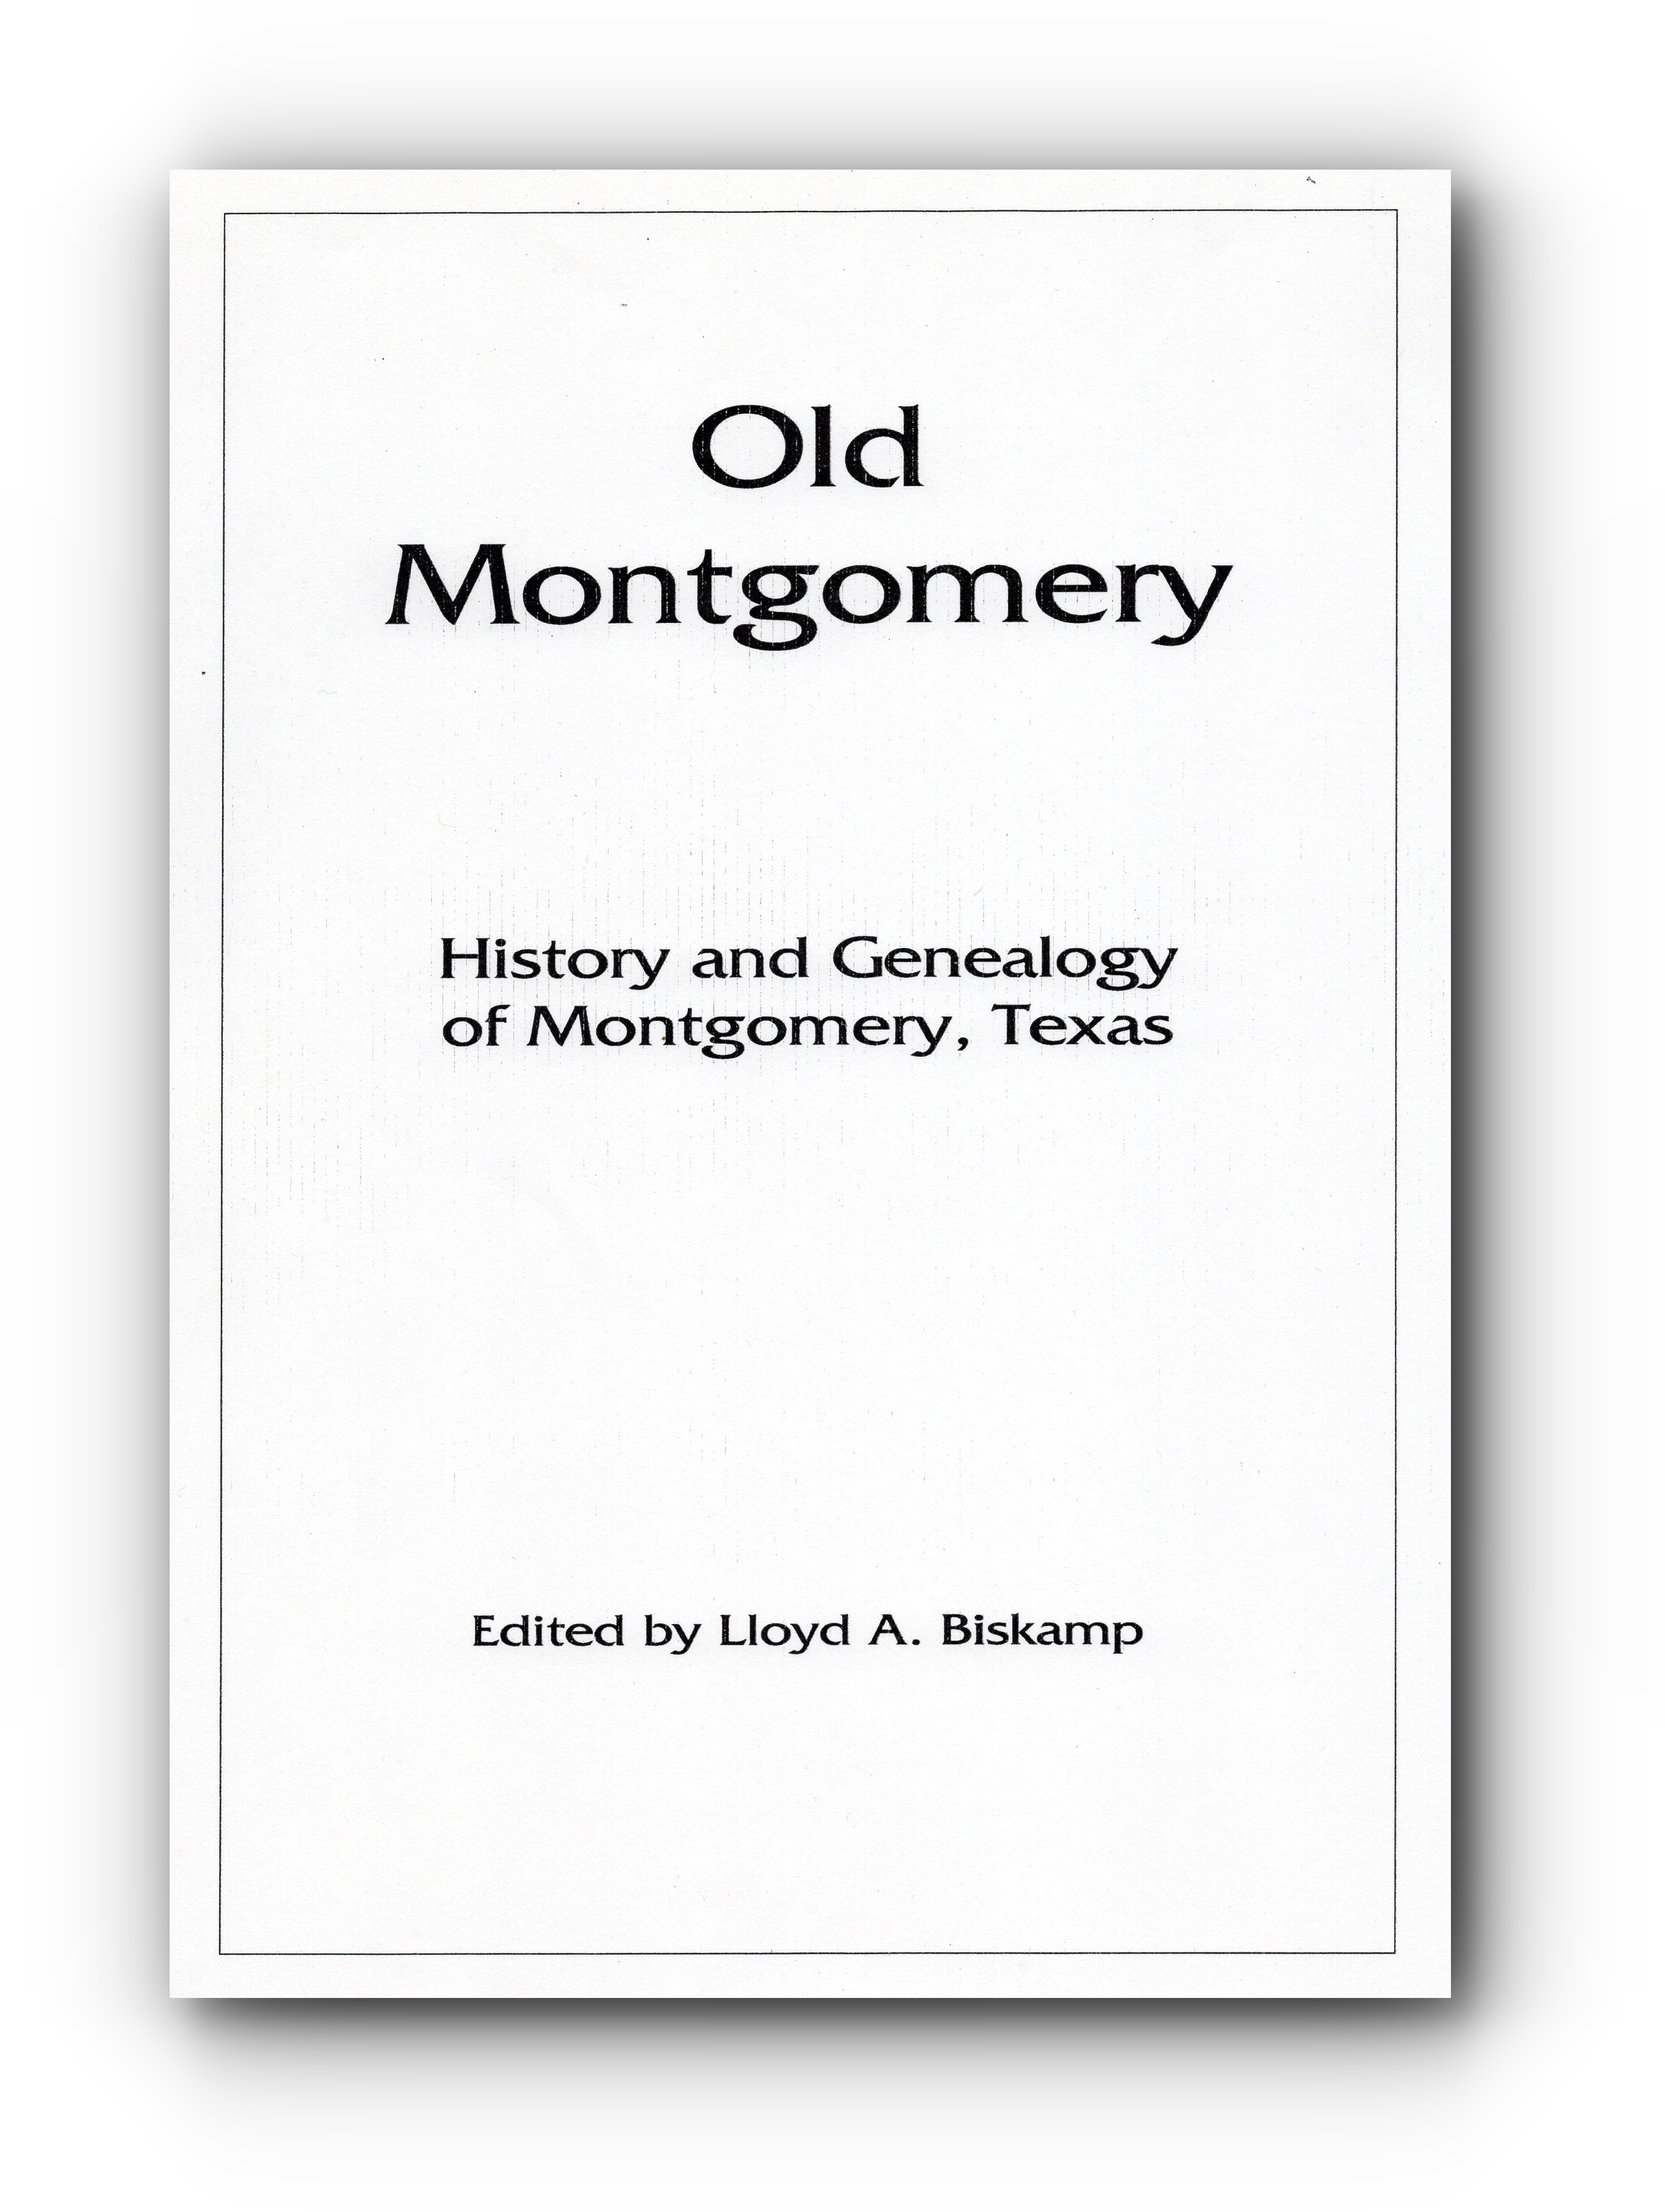 Old Montgomery: History and Genealogy of Montgomery County, Texas by Lloyd A. Biskamp (1998)